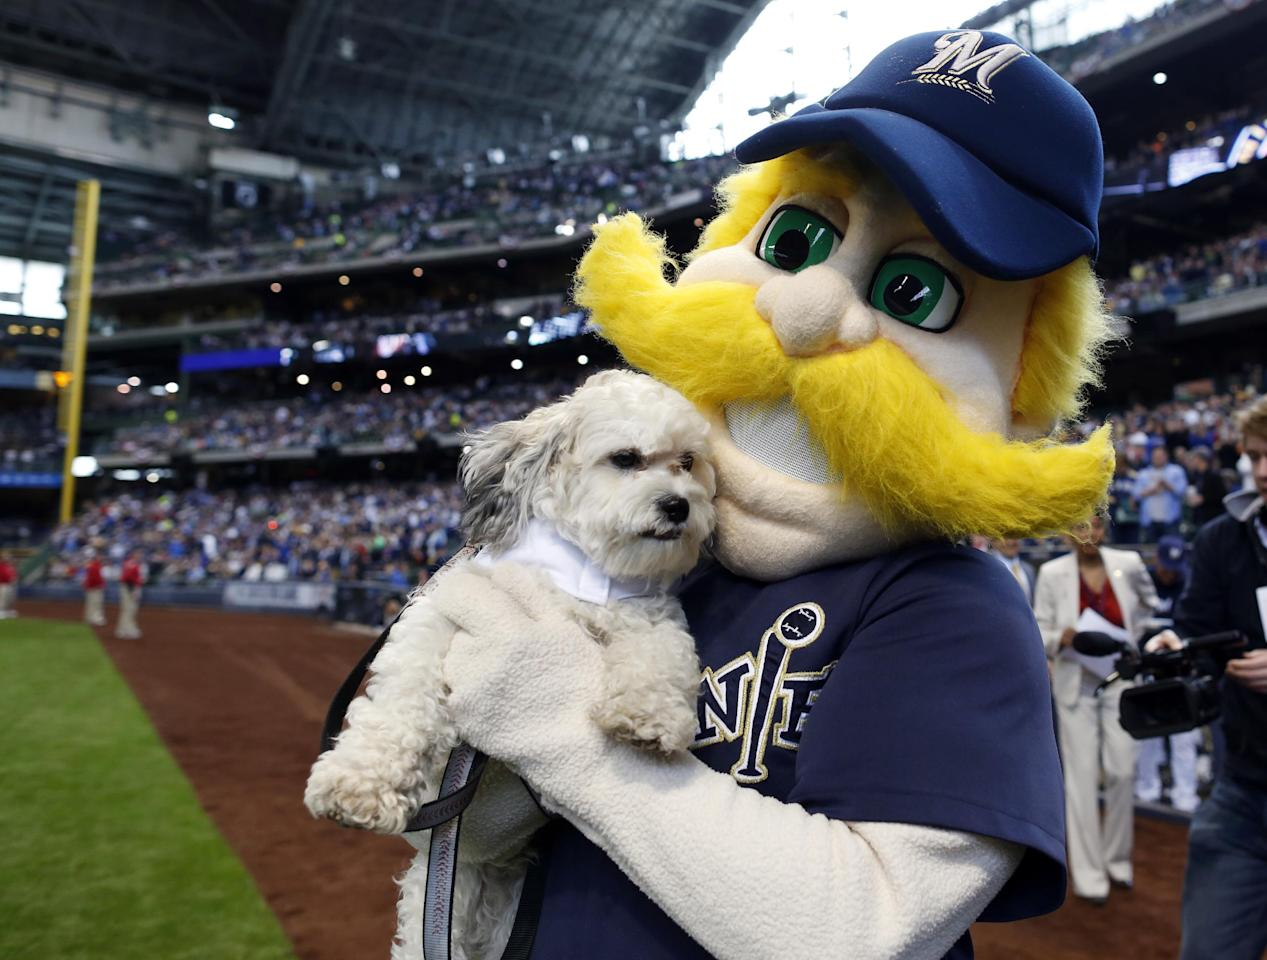 Bernie Brewer, right, carries Hank, the unofficial mascot of the Milwaukee Brewers, out for opening ceremonies before a baseball game between the Brewers and Atlanta Braves at Miller Park, Monday, March 31, 2014, in Milwaukee. (AP Photo/Jeffrey Phelps)